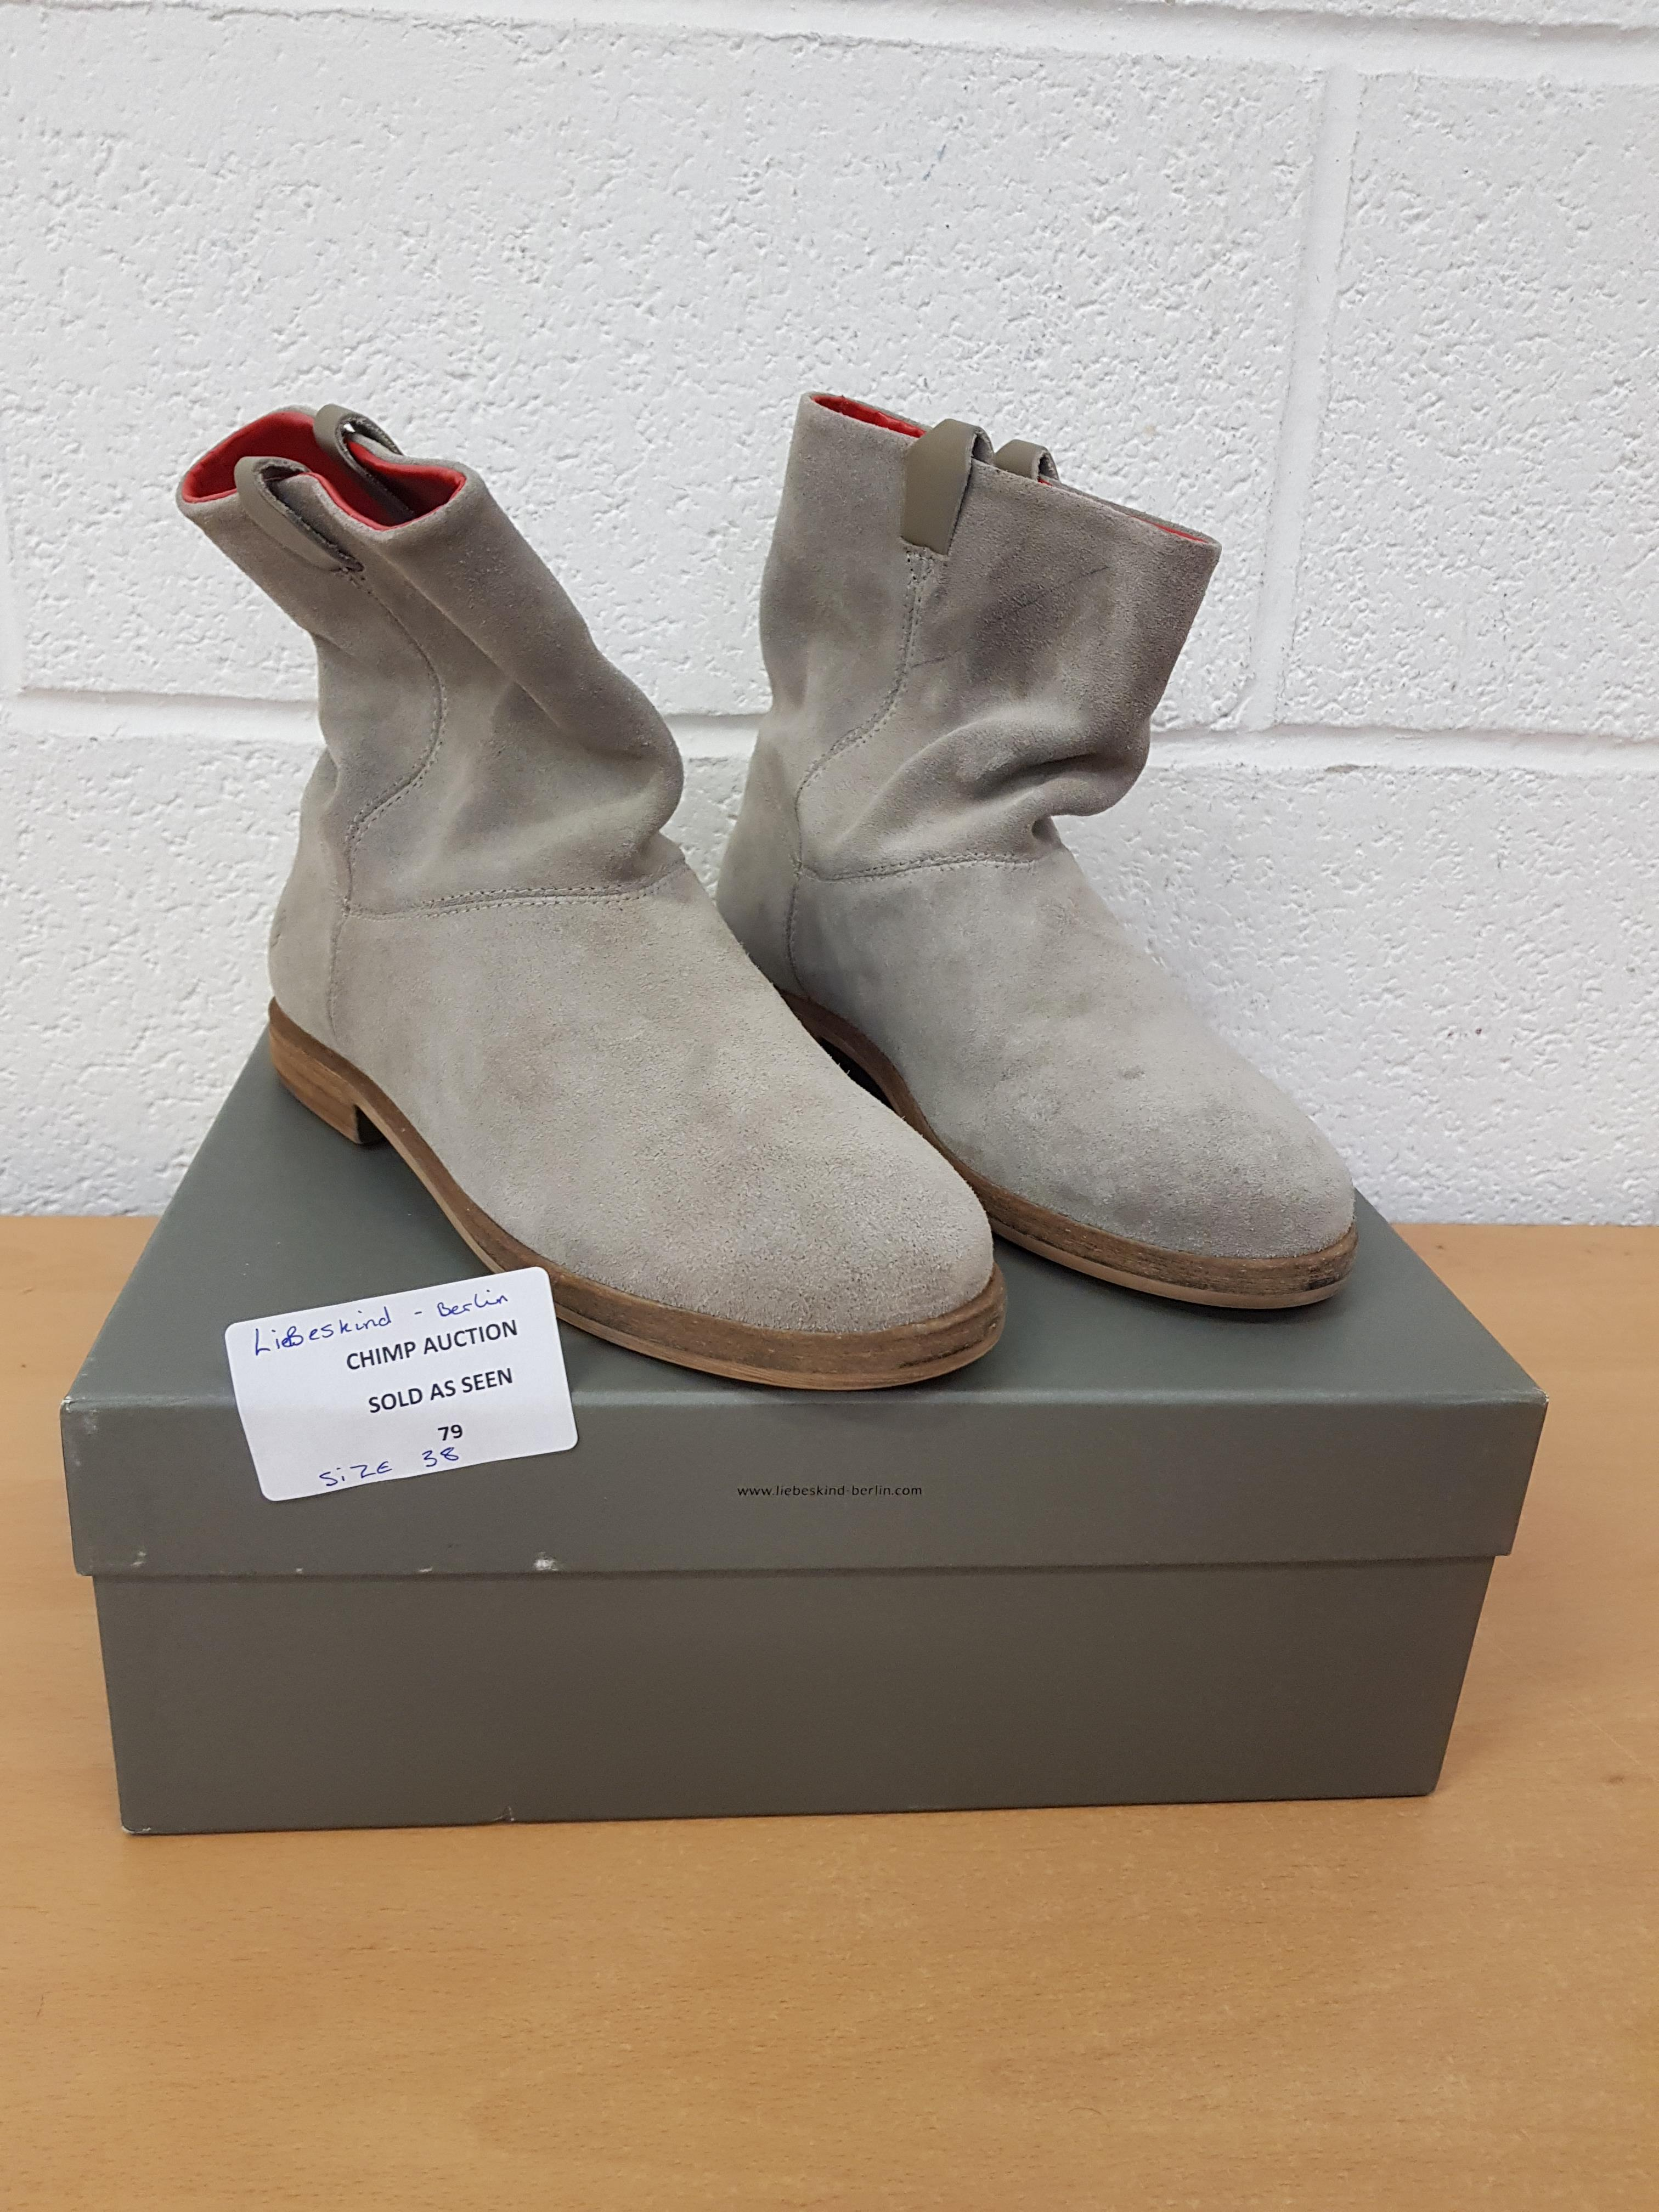 Lot 79 - Liebeskind Berlin ladies shoes EU 38 RRP £119.99